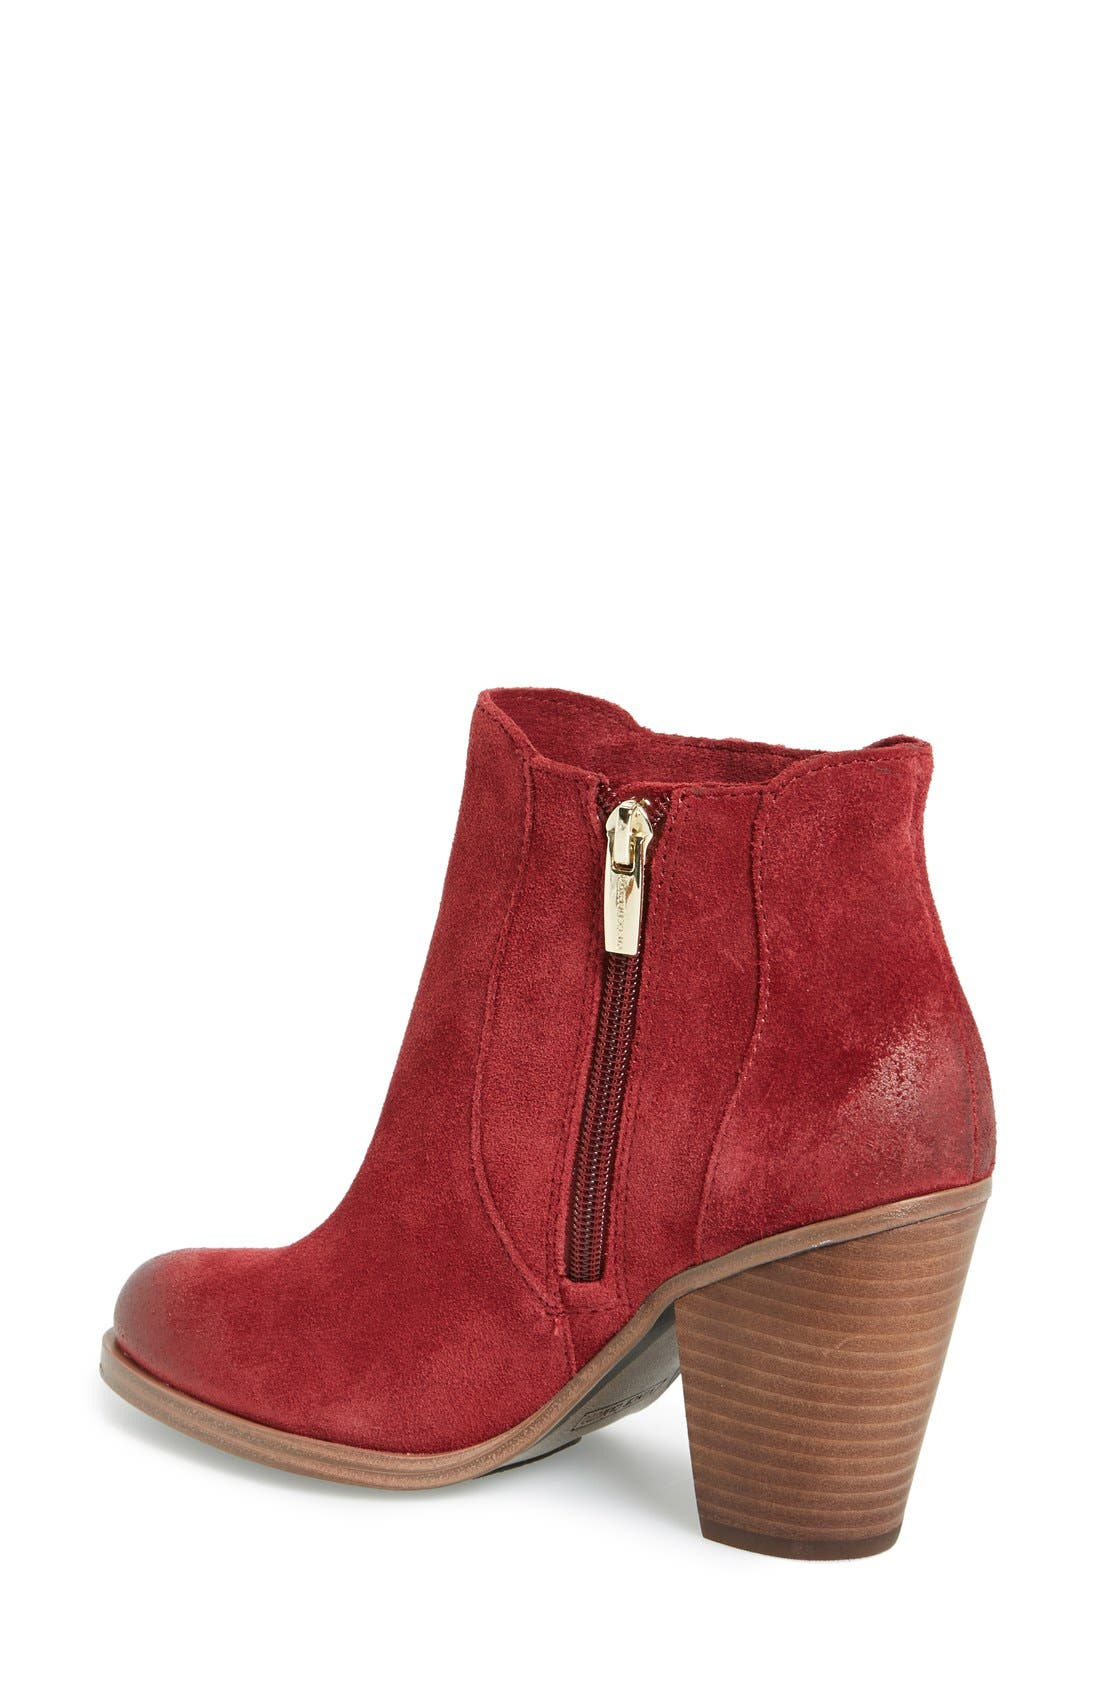 'Harlin' Fringe Bootie,                             Alternate thumbnail 2, color,                             Chianti Suede